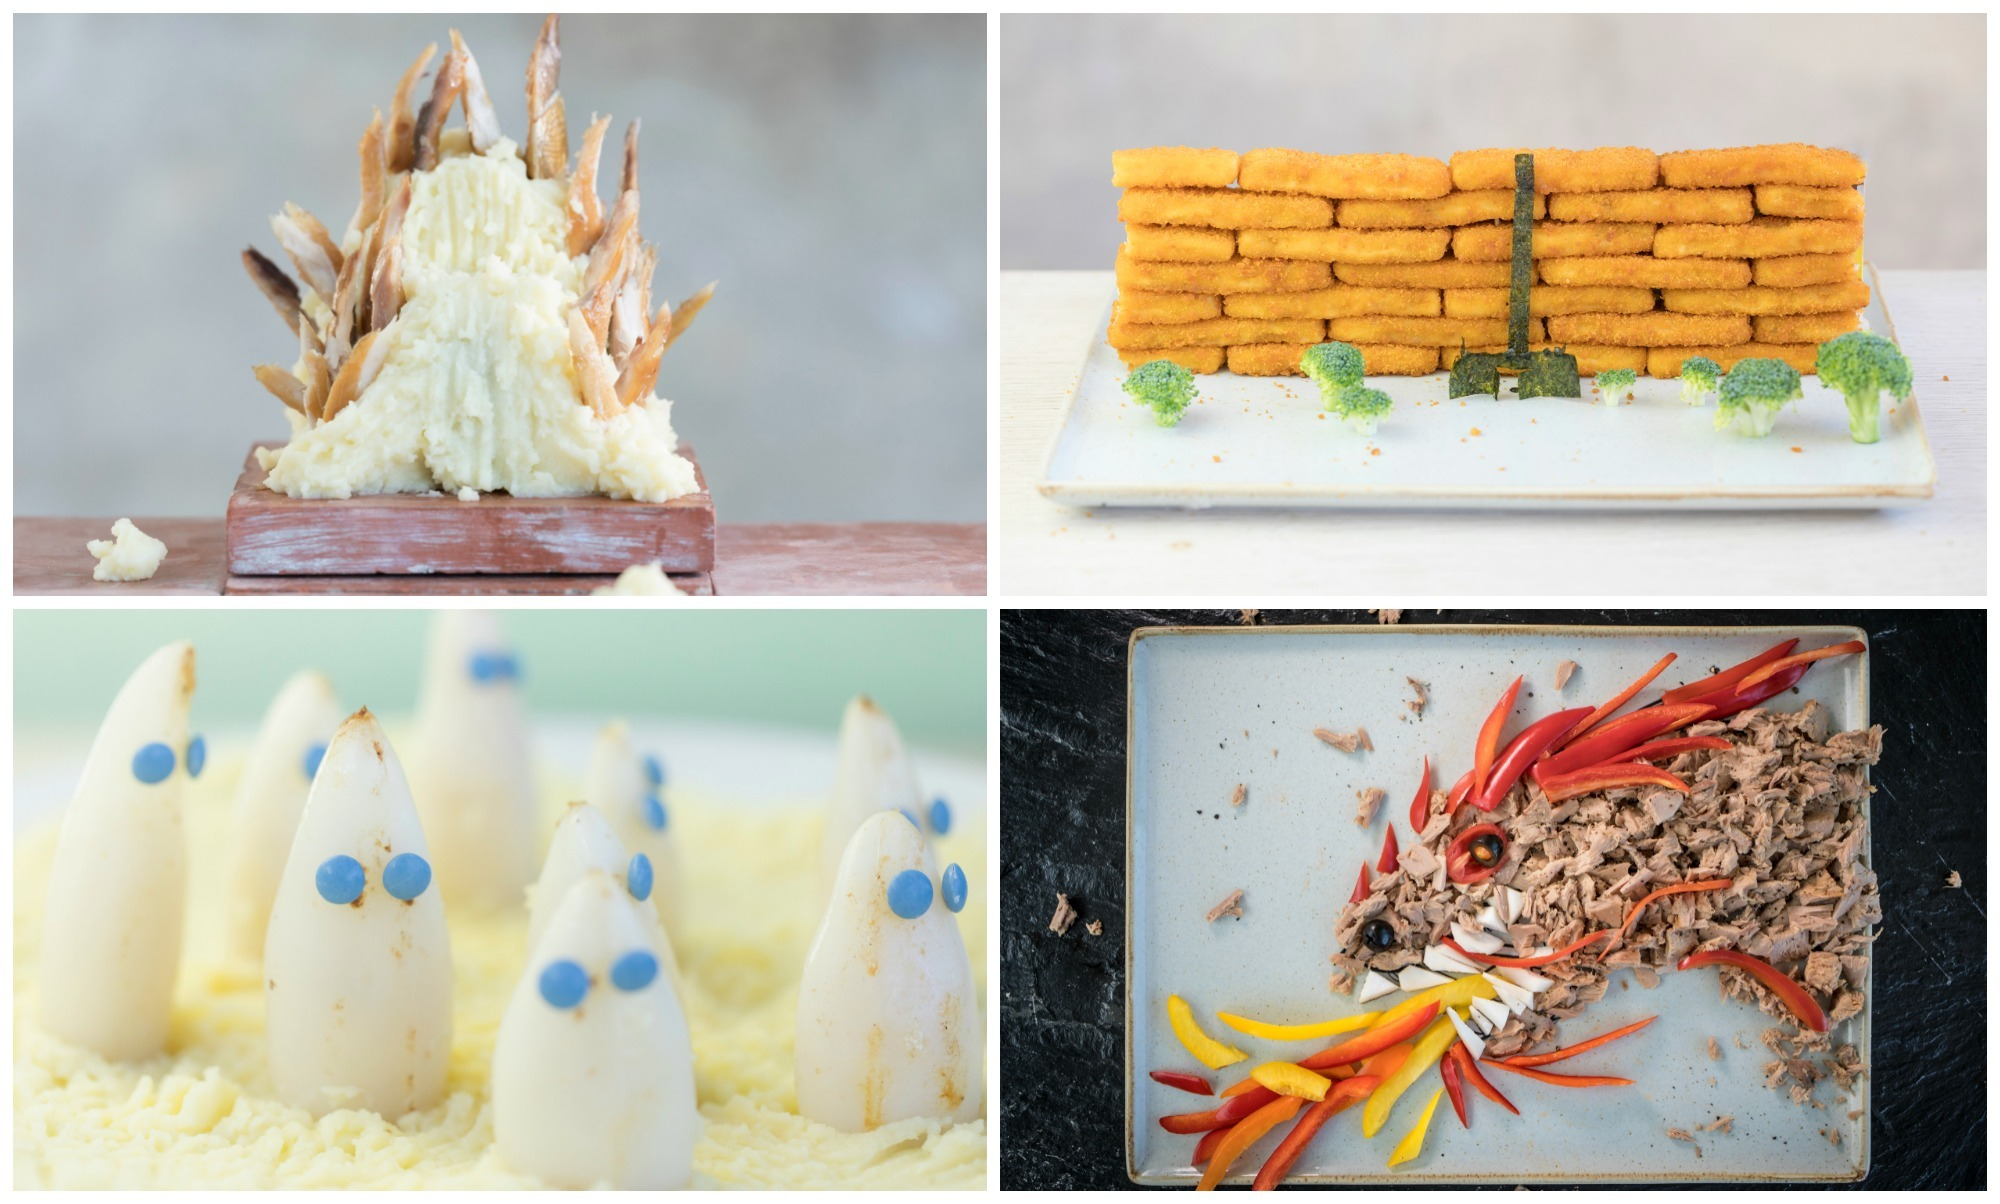 These Game of Thrones inspired fish dishes have been put together by SeaFish